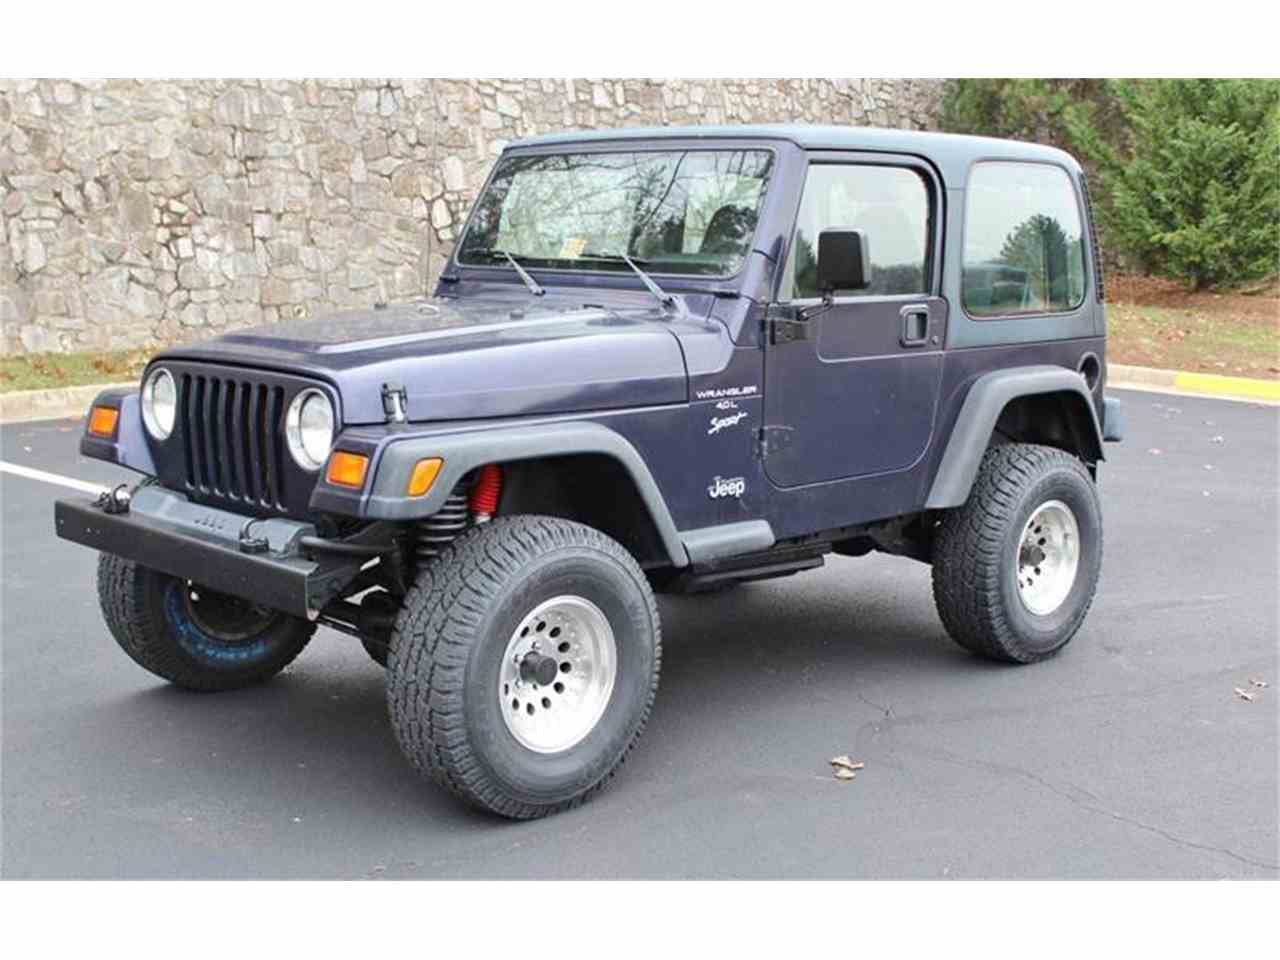 cars se vende wrangler auto tj car en panama trucks used jeep